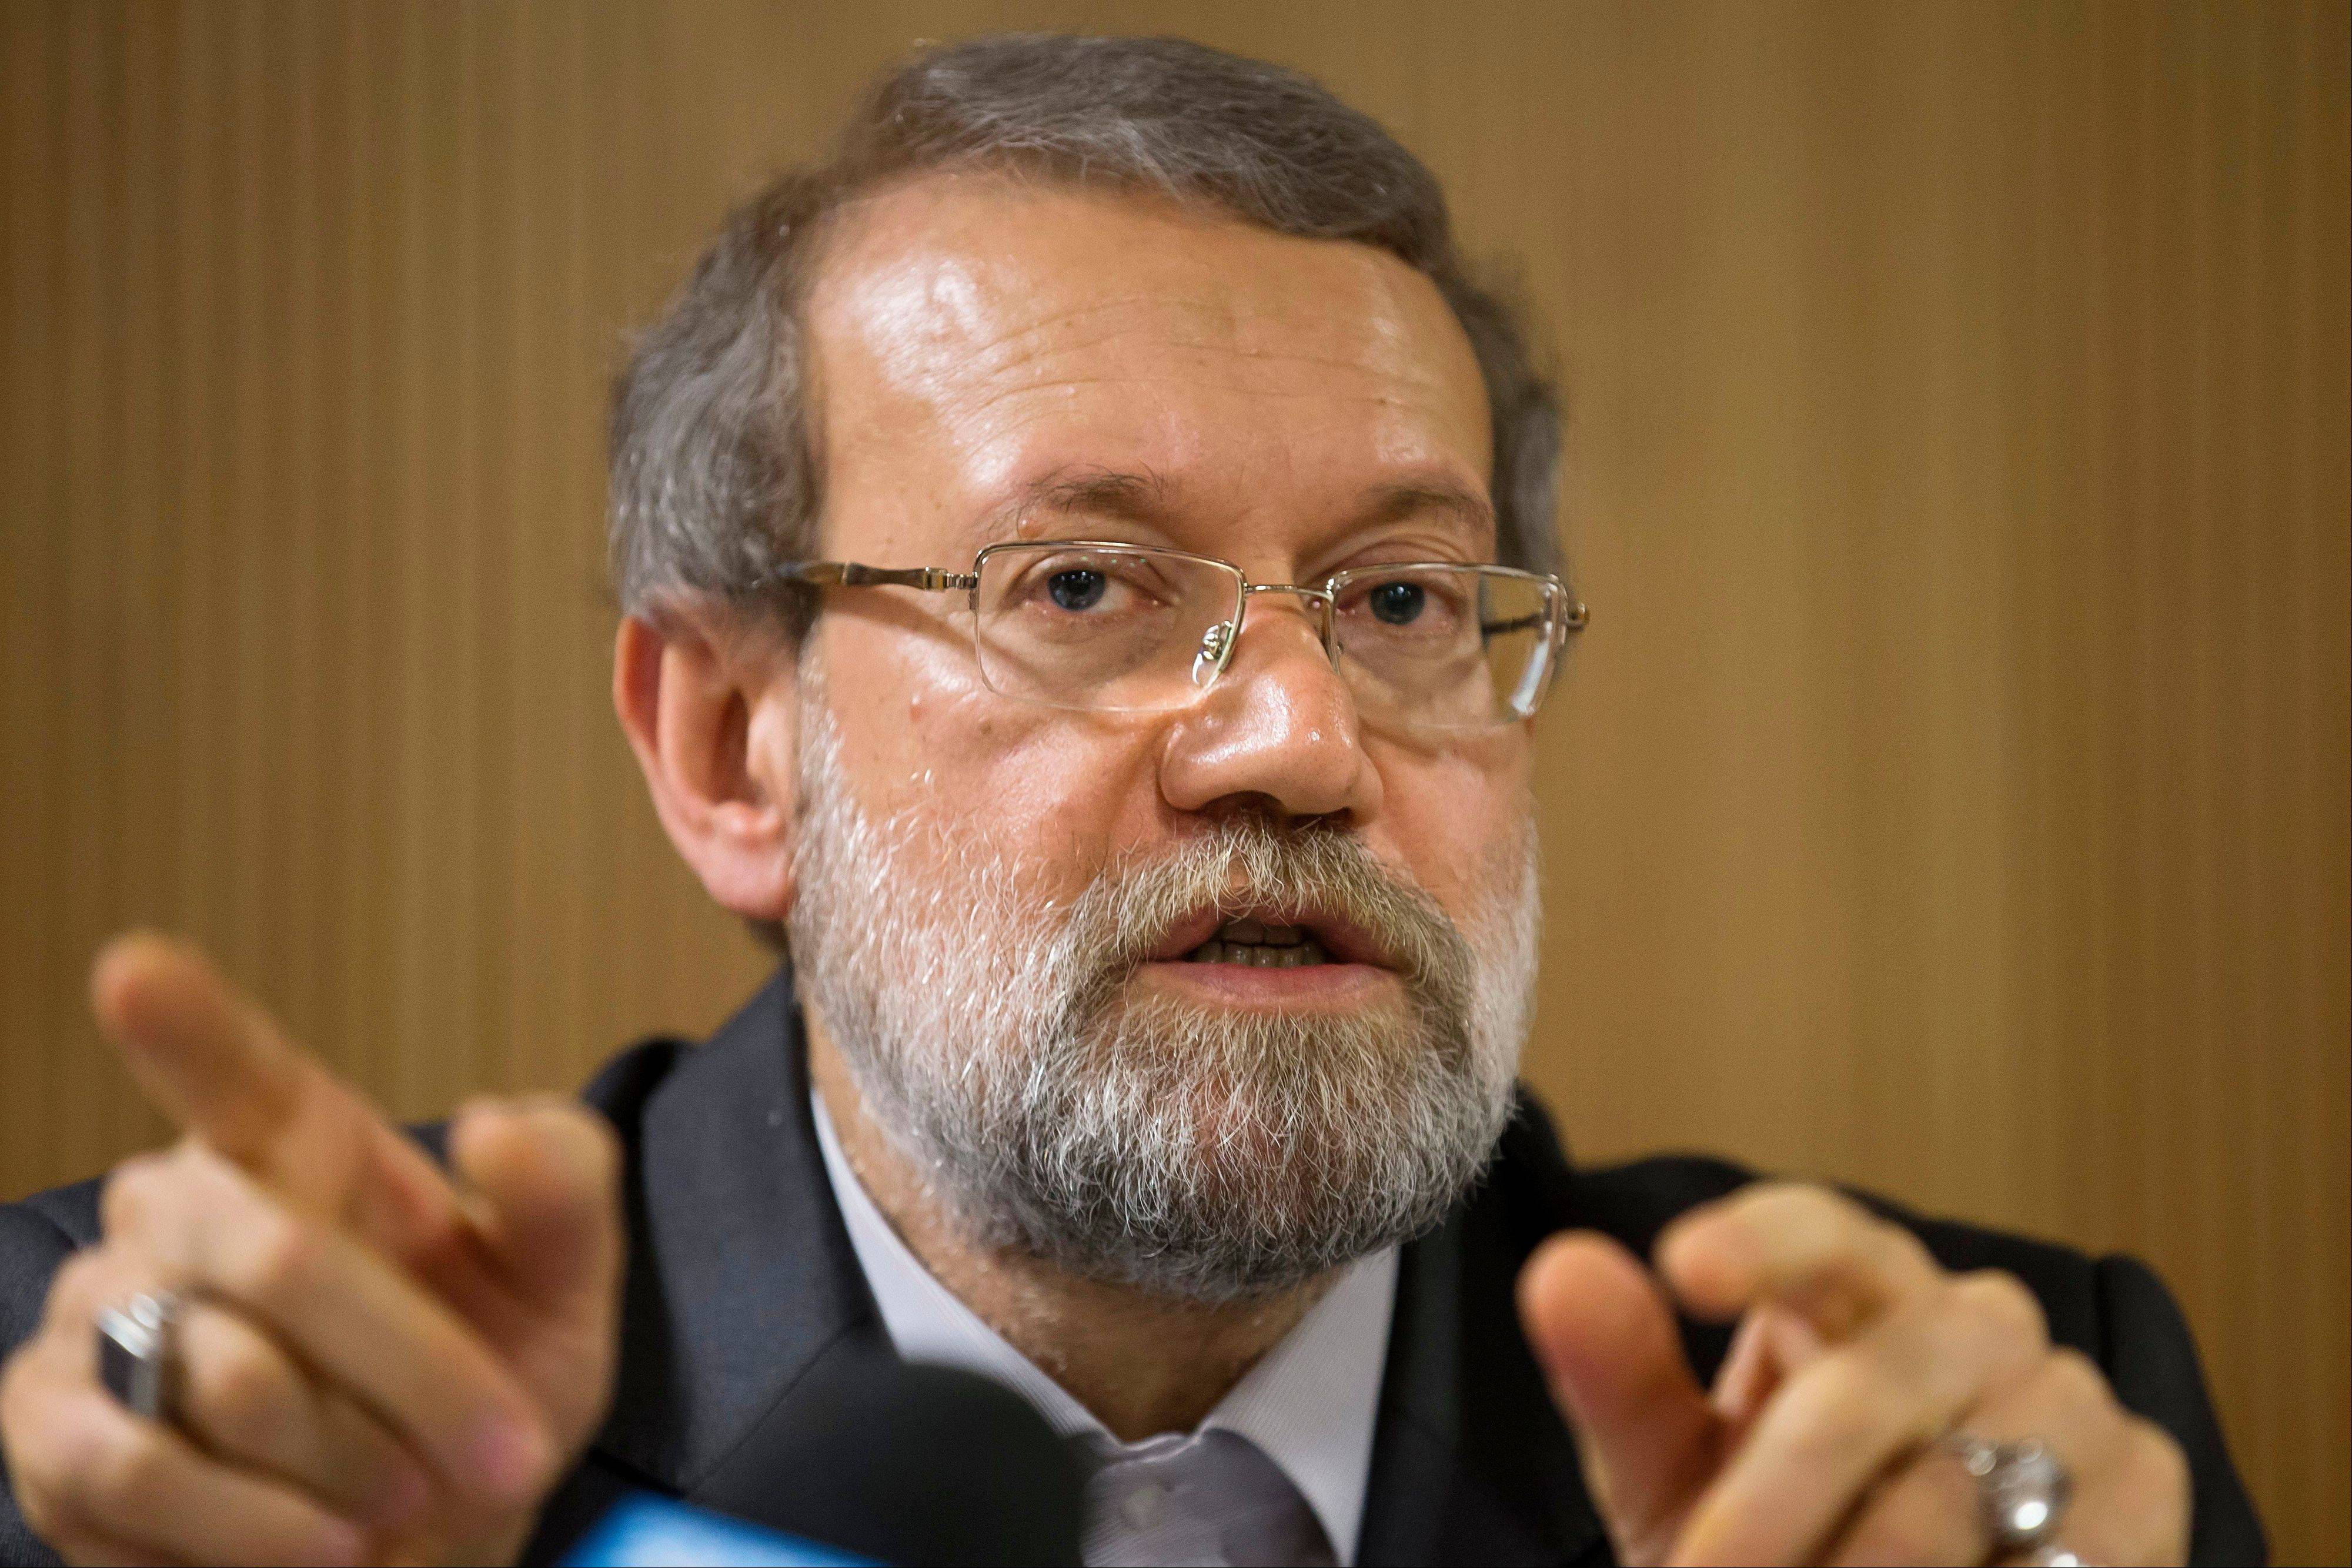 Iran's Parliament speaker Ali Larijani answers a question during a press conference on the sidelines of the 129th Assembly of the Inter-Parliamentary Union (IPU), in Geneva, Switzerland, Wednesday, Oct. 9, 2013. In an Associated Press interview, Larijani saidIran has more enriched uranium than it needs and plans to use that as a bargaining chip at nuclear talks in Geneva next week.